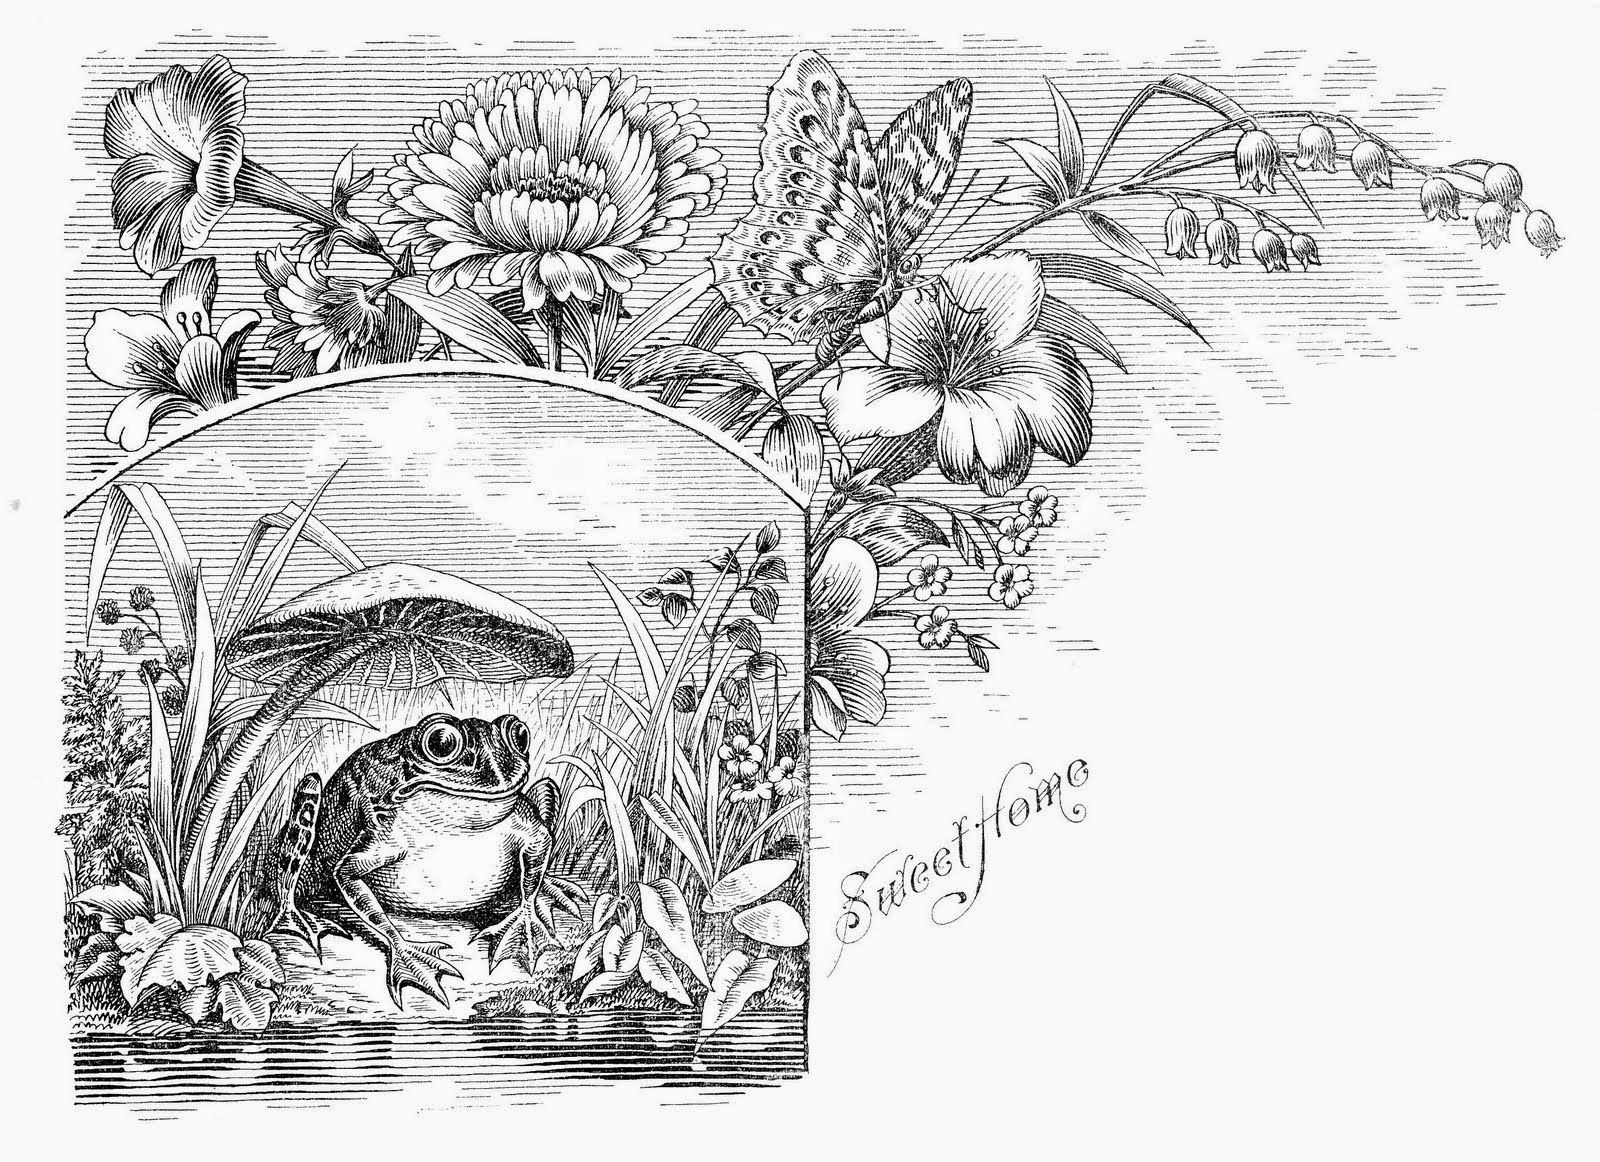 coloring pages for adults frogs - google search | colouring pages ... - Love Coloring Pages Teenagers